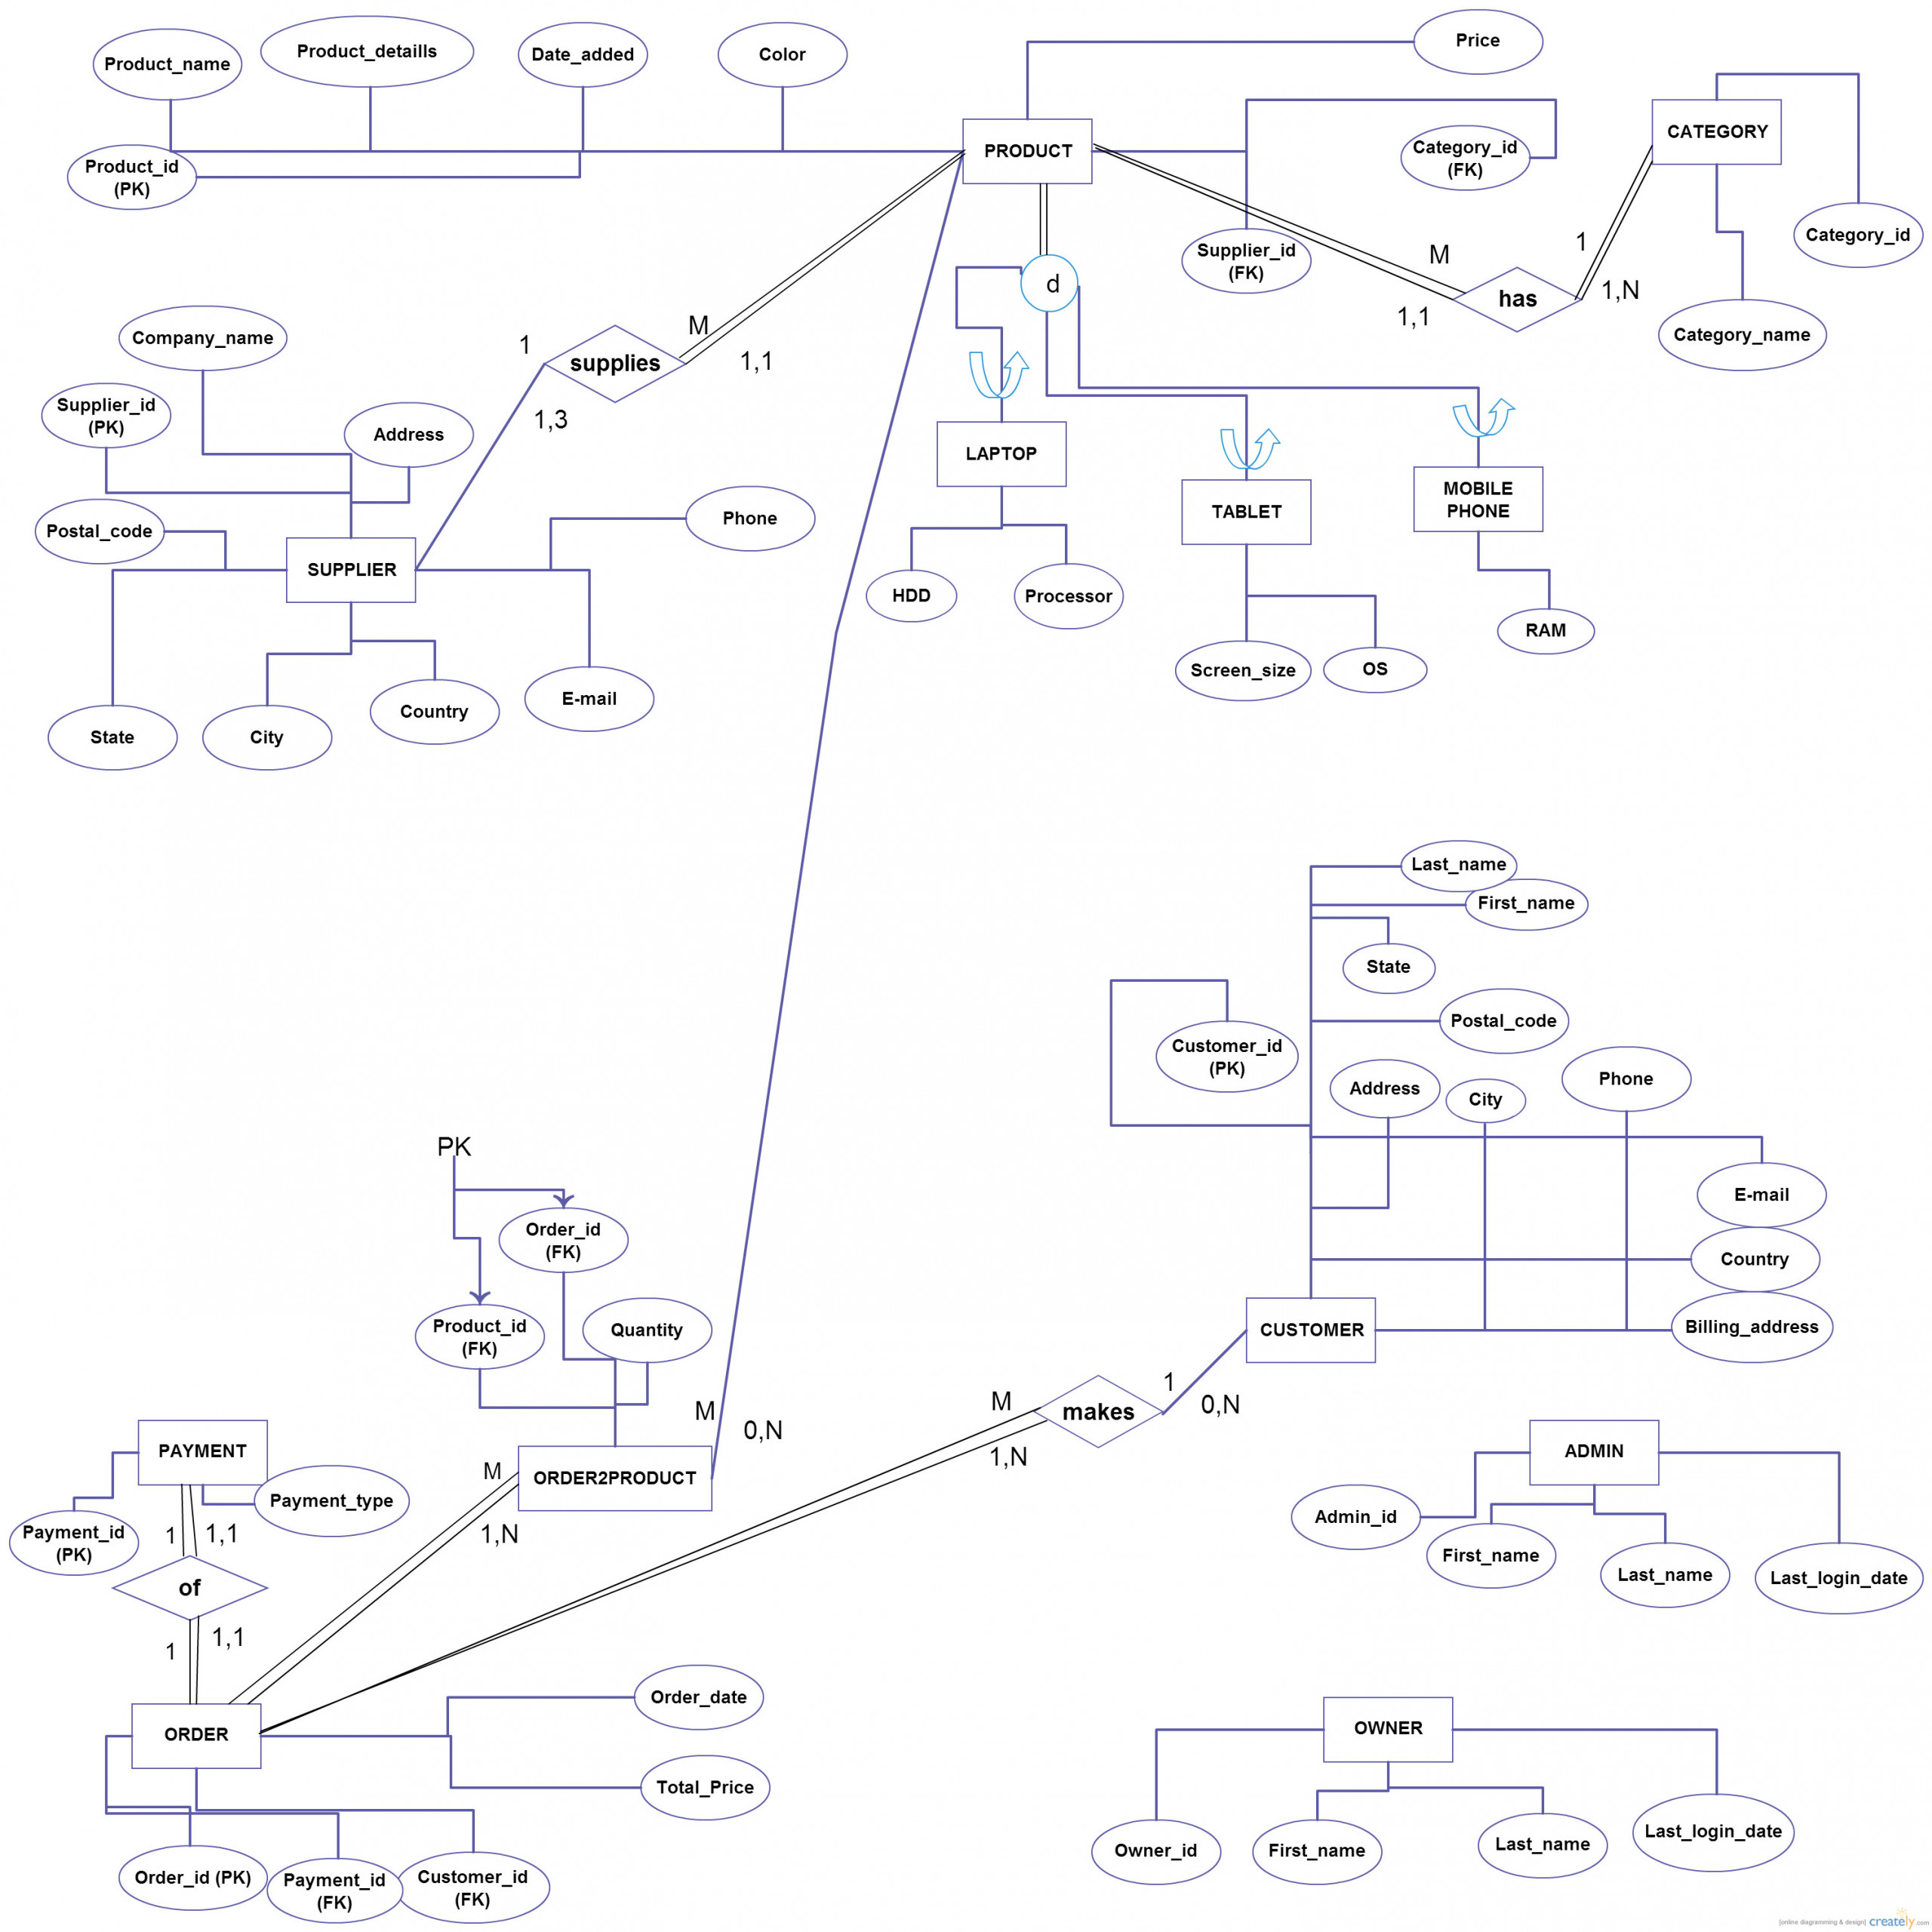 Does This E-R/eer Diagram Contain Correct Relationships And with Er Diagram Vs Eer Diagram